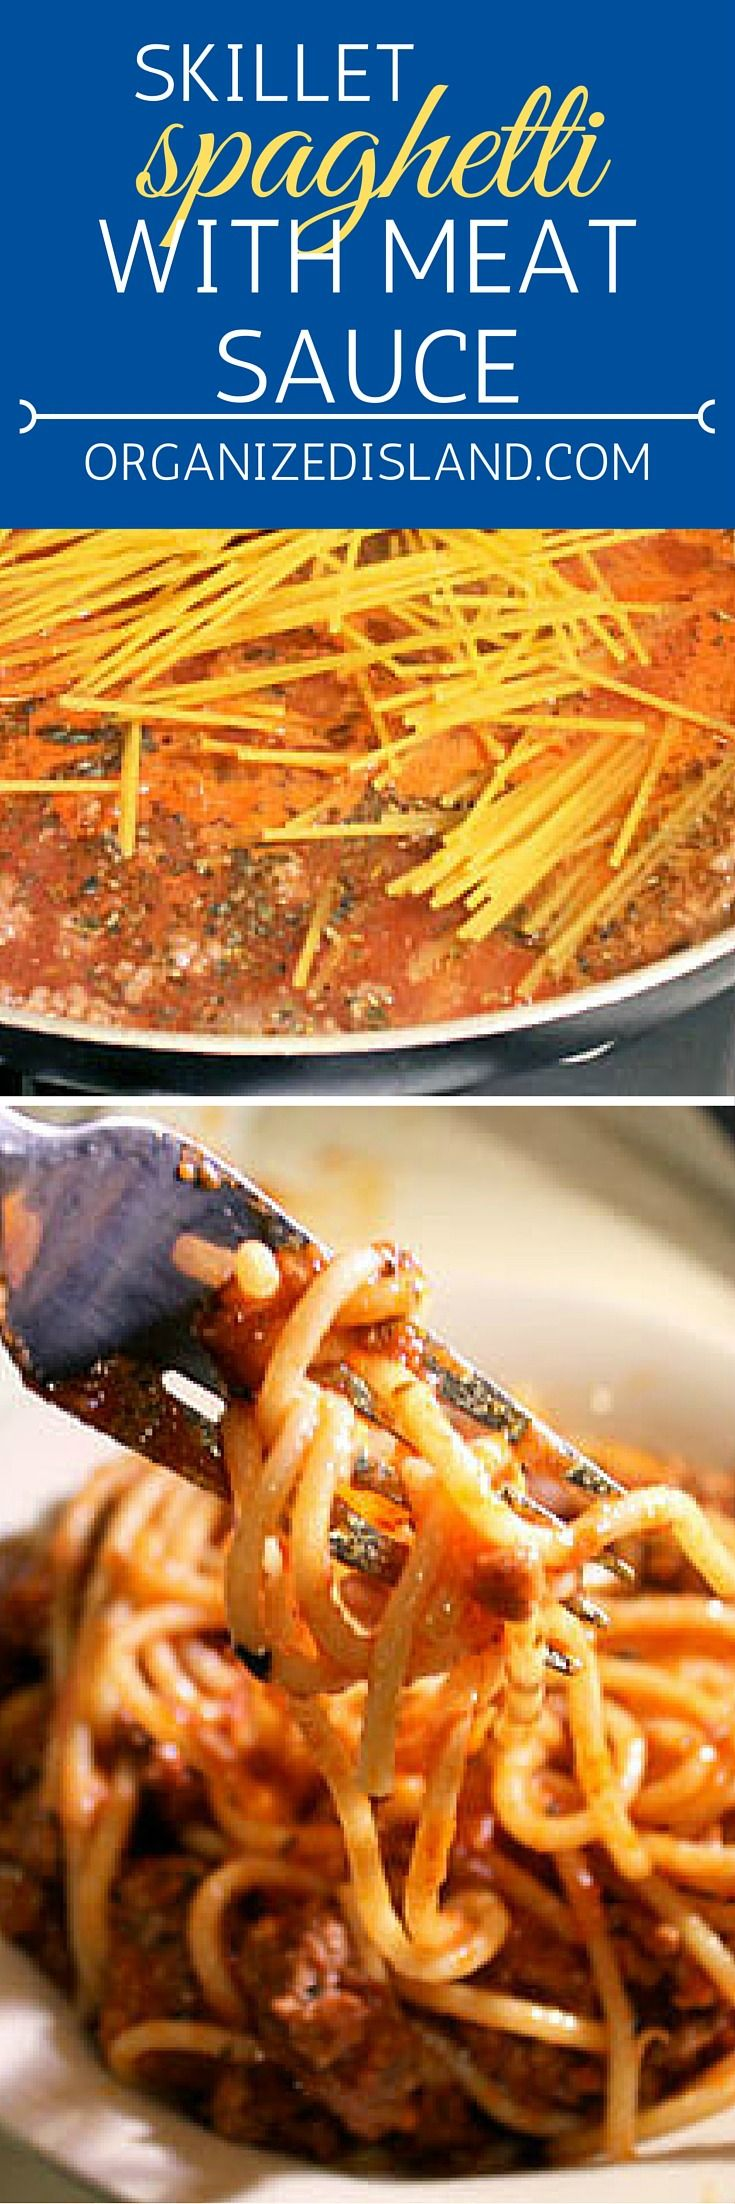 What a quick dinner idea? This skillet spaghetti with meat sauce is ready in 30 minutes and is made in one pan! Super easy and tasty.